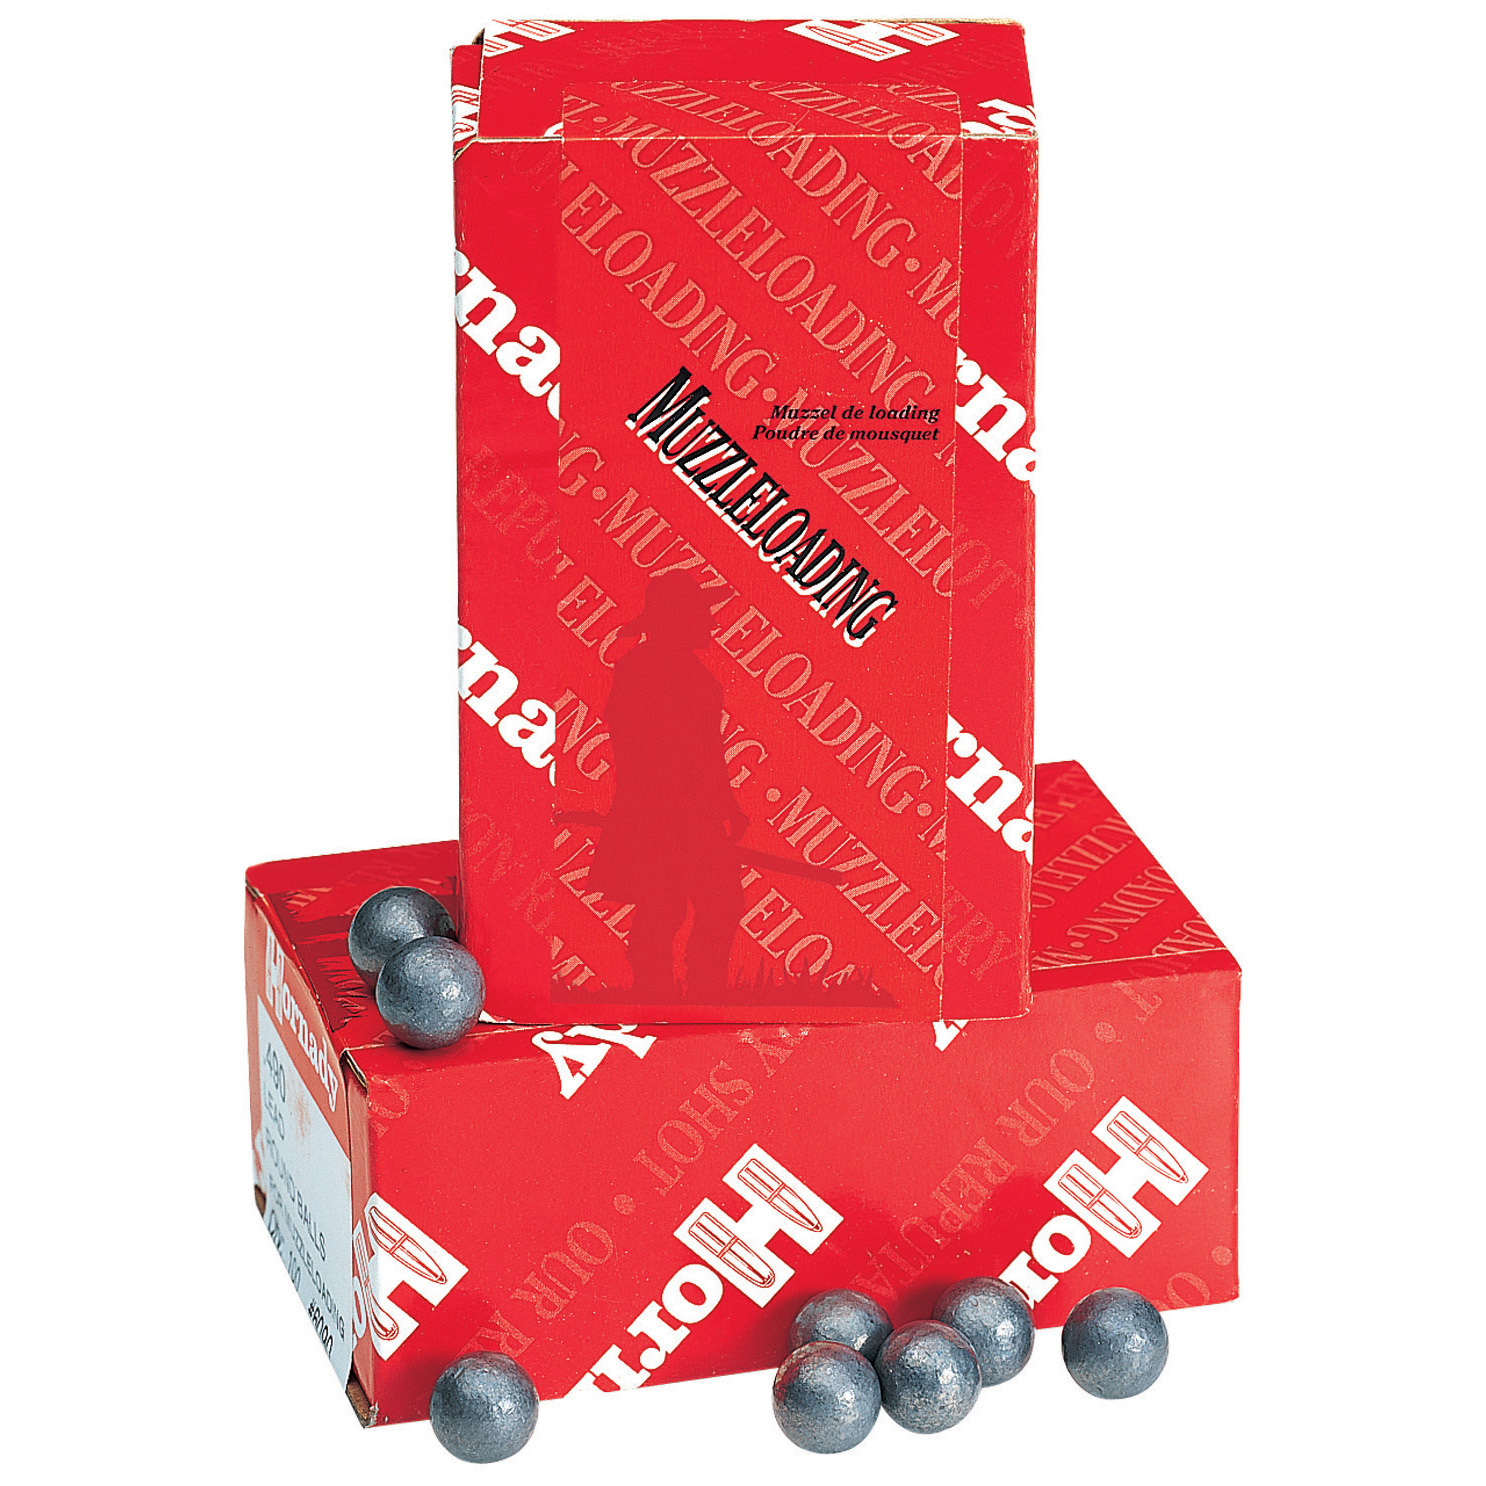 "50-Pk. of Hornady .58 Caliber .570"" Lead Balls offer incredible accuracy and consistency. Near perfect consistency and concentricity! Cold swagged from pure lead, these Hornady Lead Balls are uniform in size, weight and roundness. Their smooth, round surface assures better rotation, consistency and accuracy in the field. Features:.58 caliber .570"" diameter 50 lead balls per box. - $9.99"